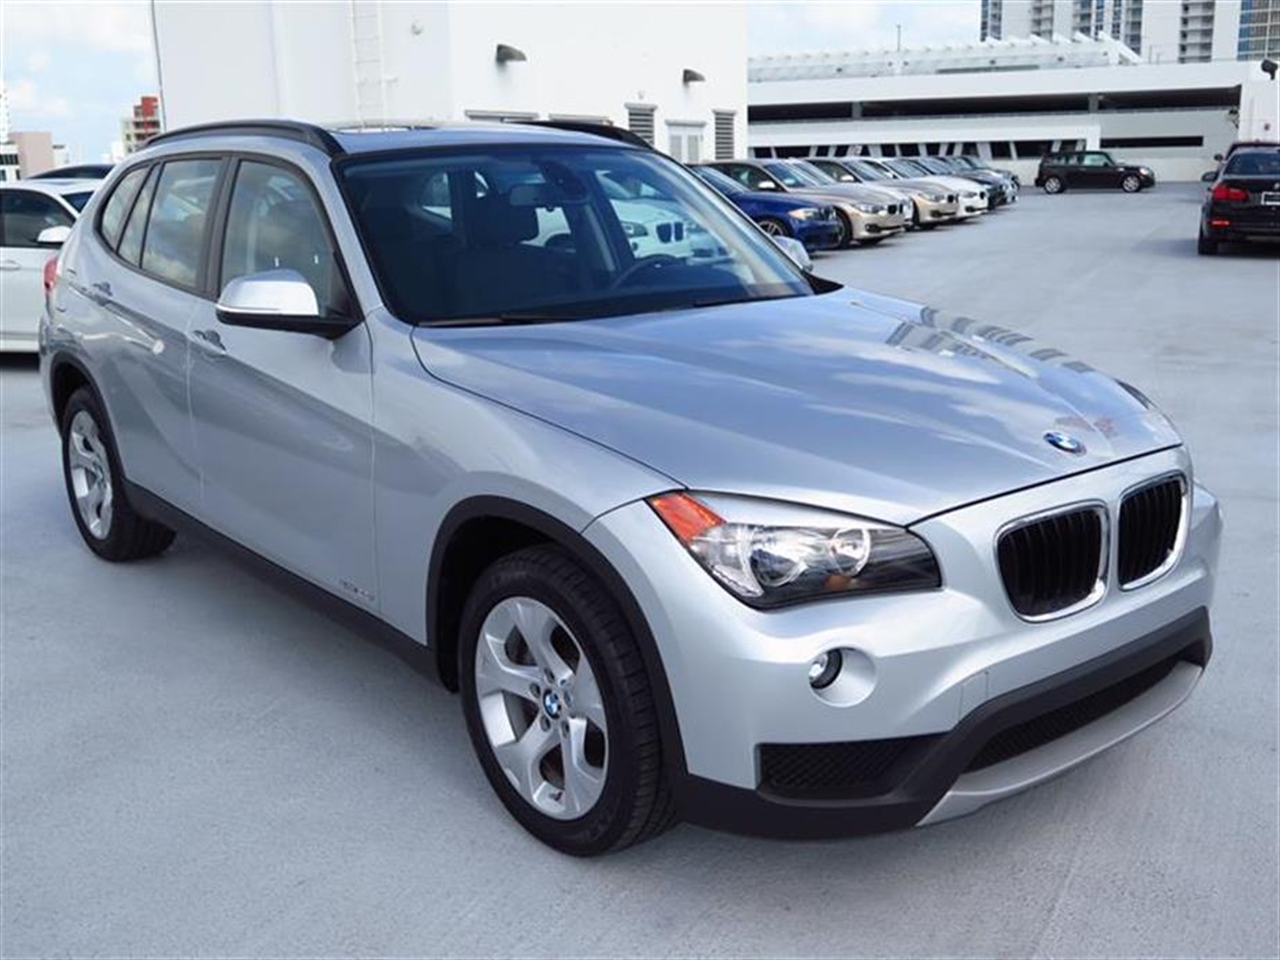 2014 BMW X1 RWD 4dr sDrive28i 9724 miles 2 Seatback Storage Pockets 3 12V DC Power Outlets LEATH